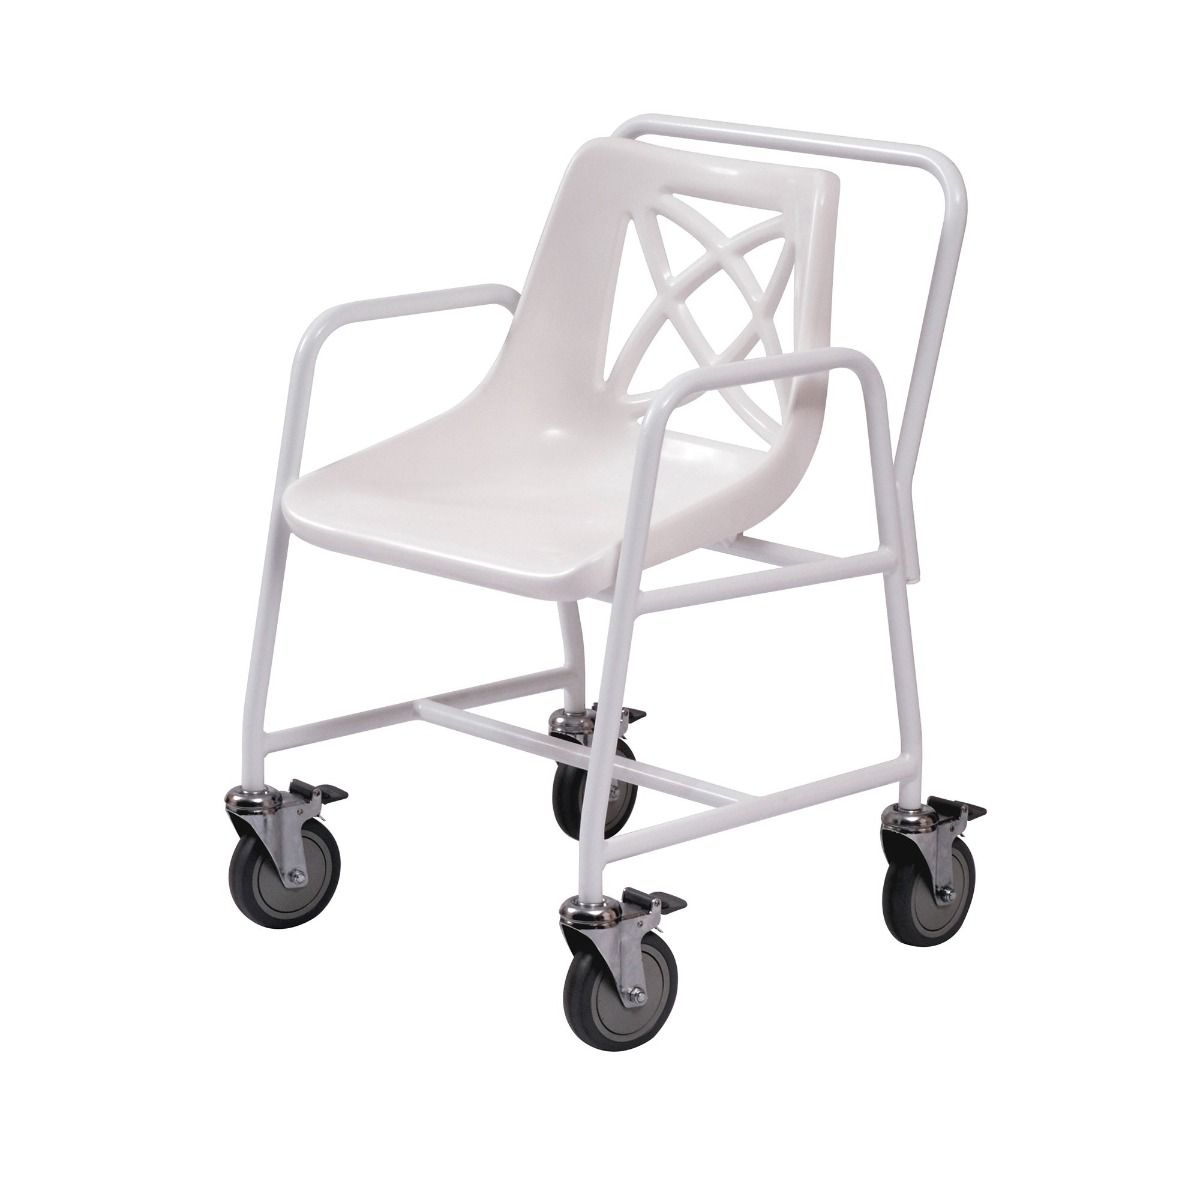 Roma Medical wheeled shower chair viewed from the side with brakes on each wheel